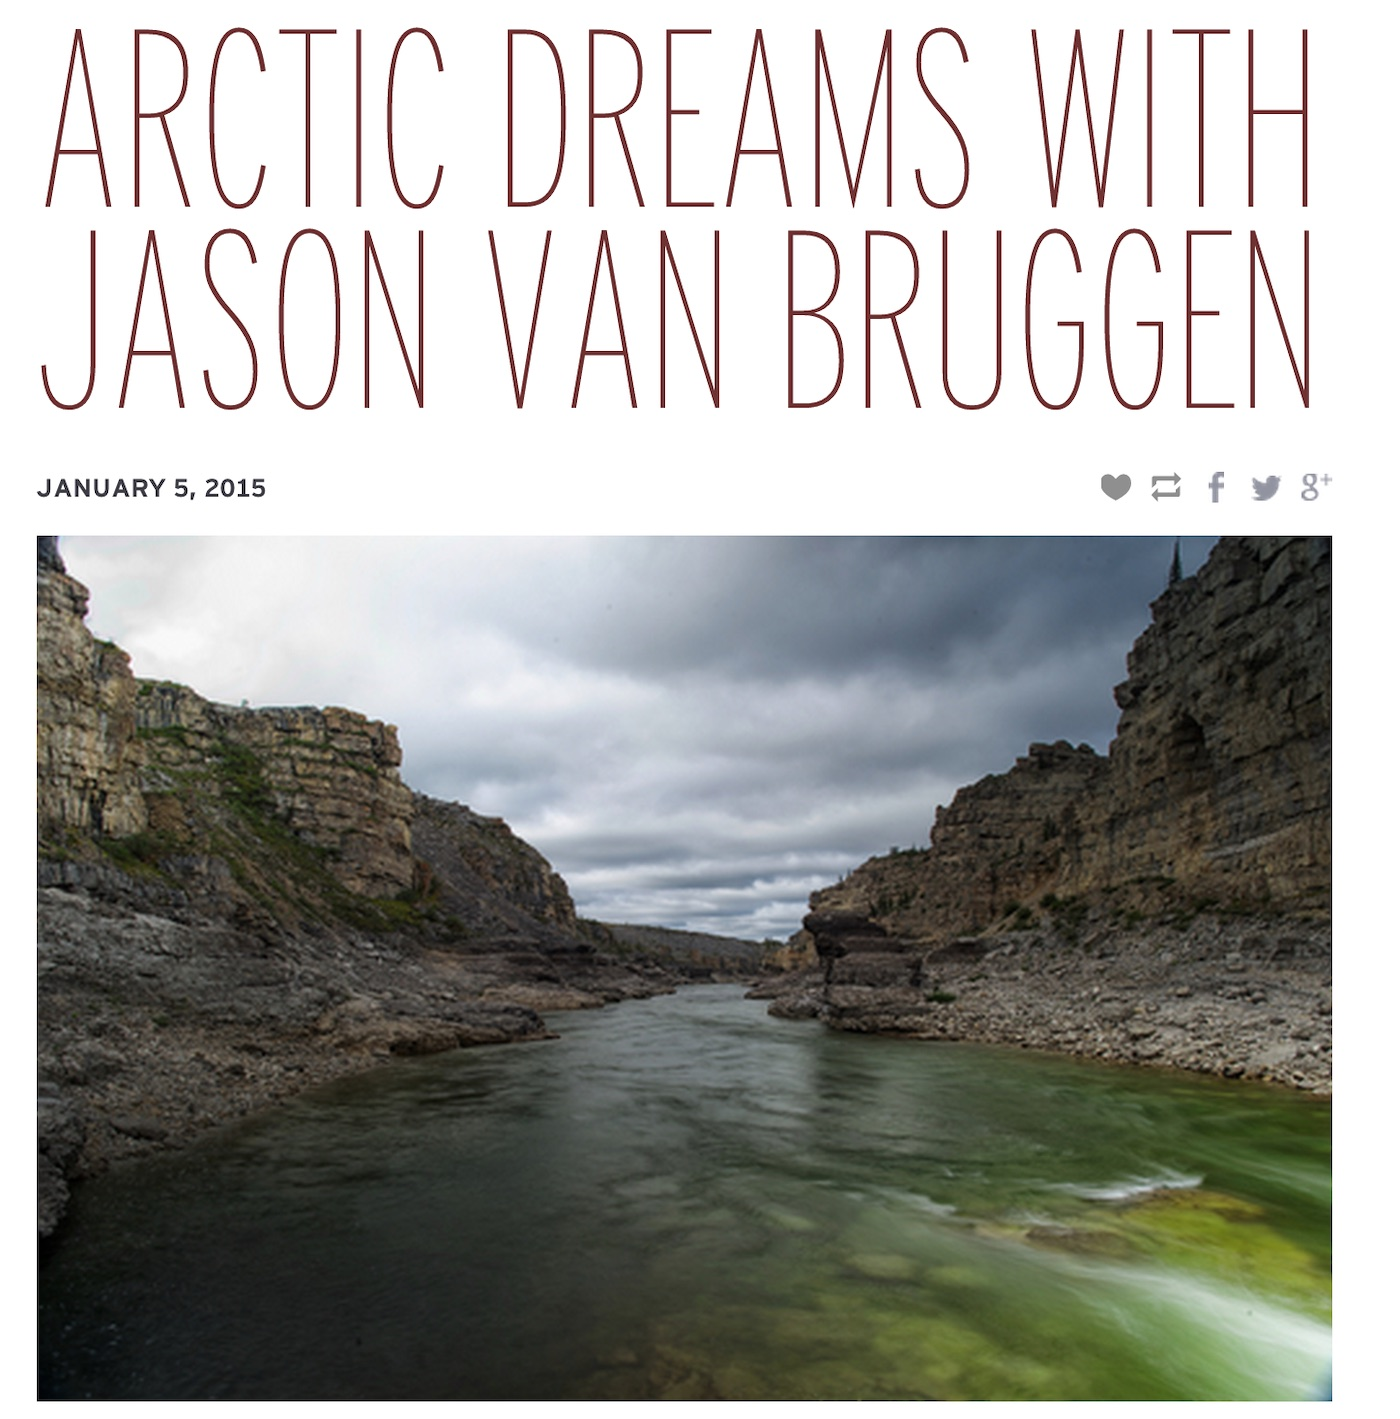 ZealOptics.JasonvanBruggen.ArcticDreams